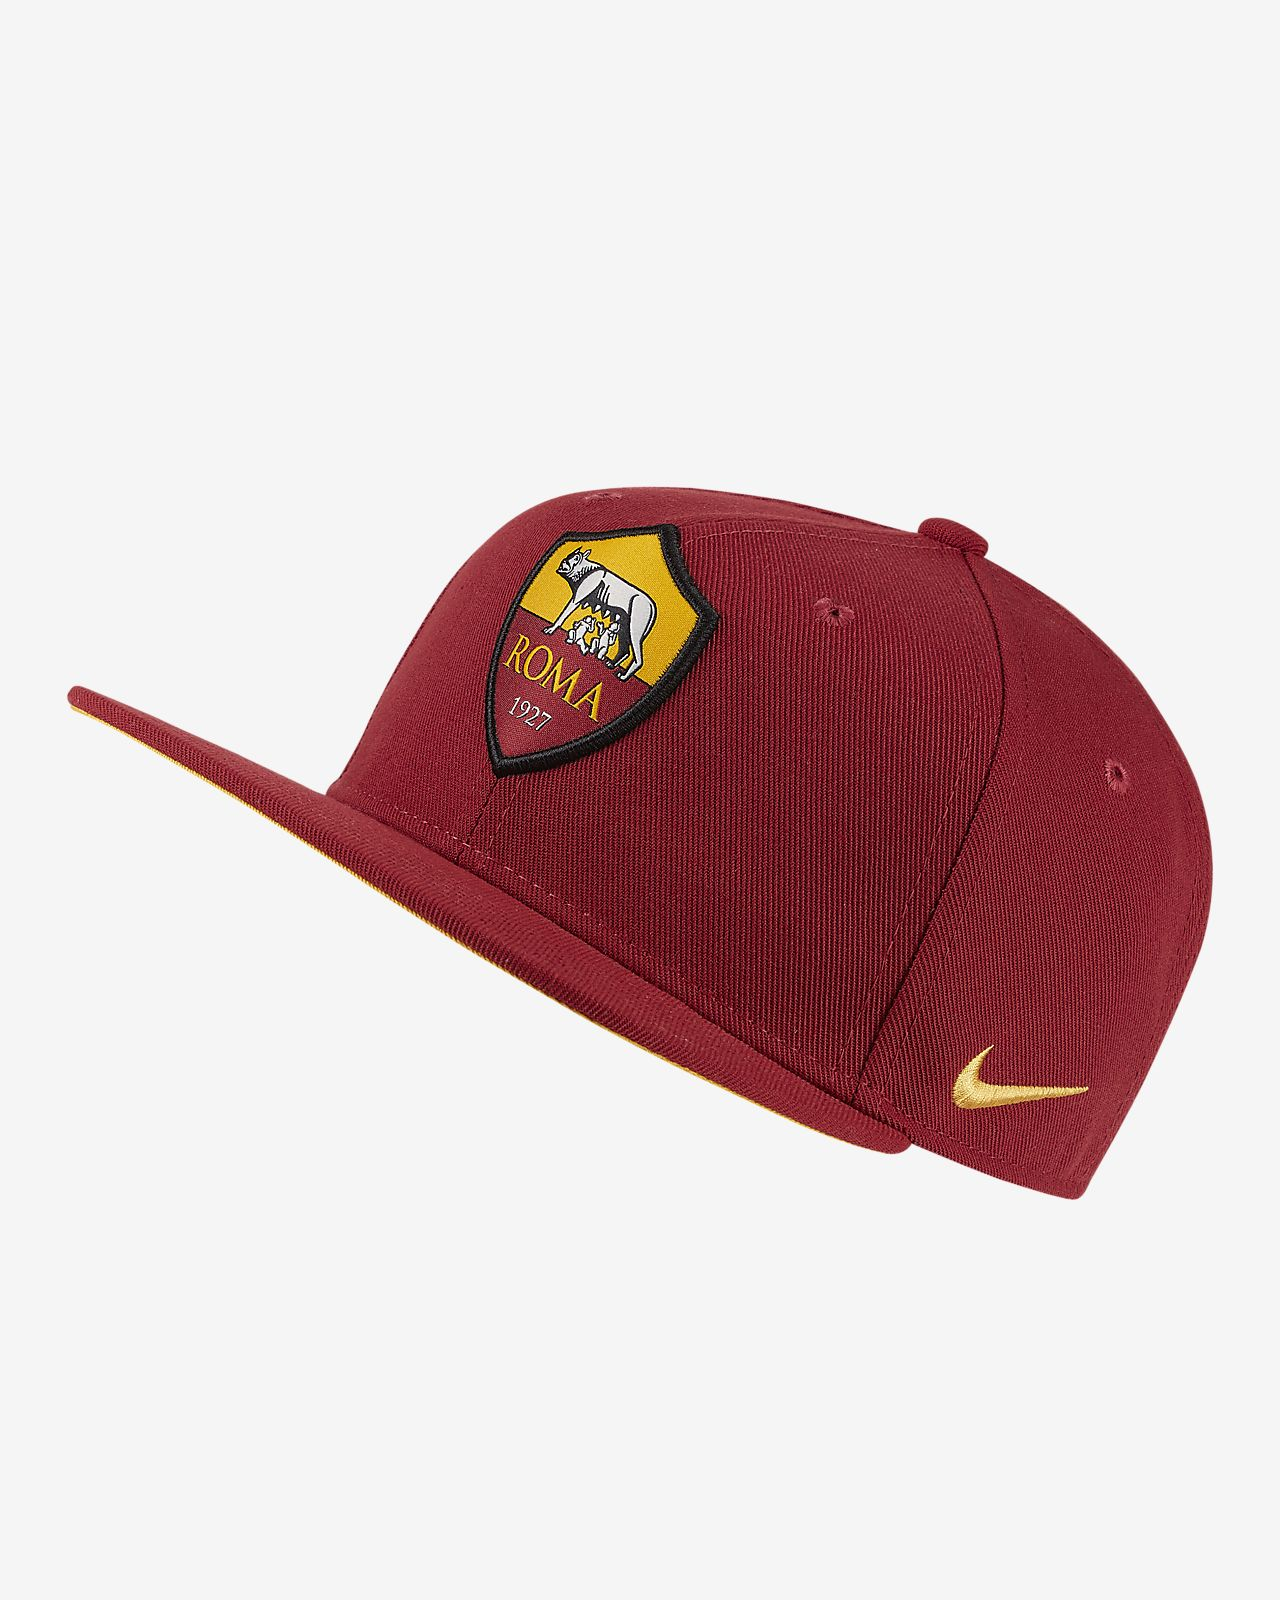 Nike Pro A.S. Roma justerbar caps til store barn